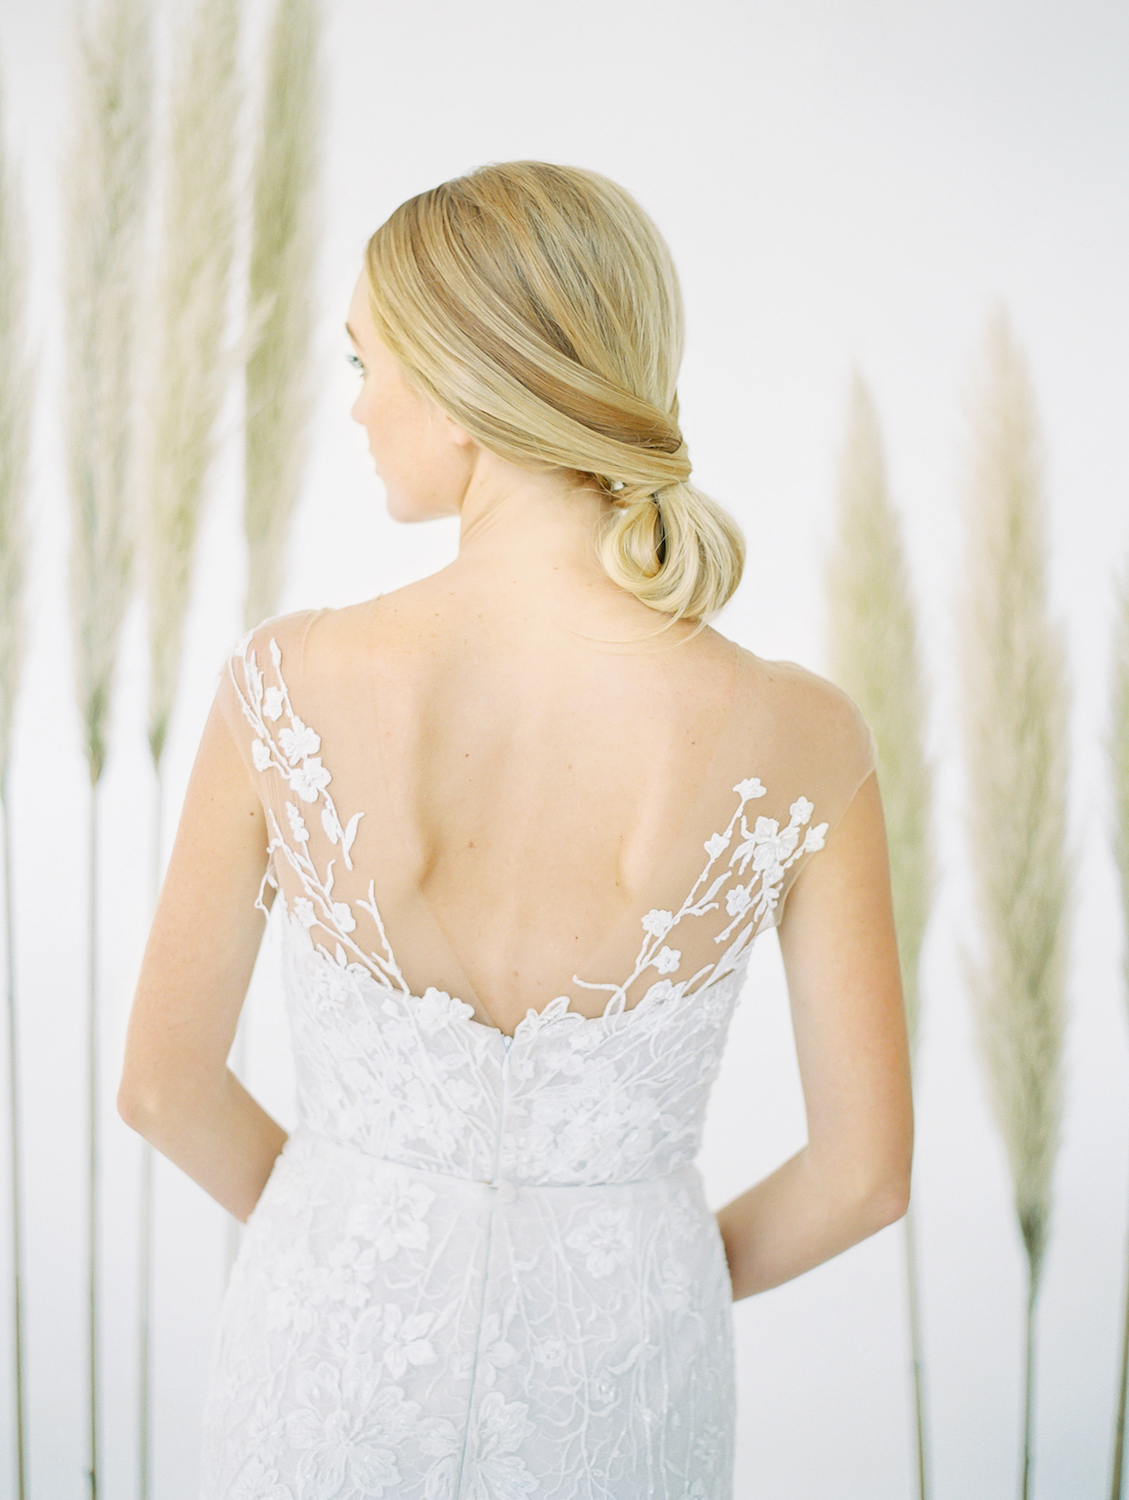 Low loose bun bridal hair | Studio 710 | Compass Floral | Wedding Florist in San Diego and Southern California | Dear Lovers Photography